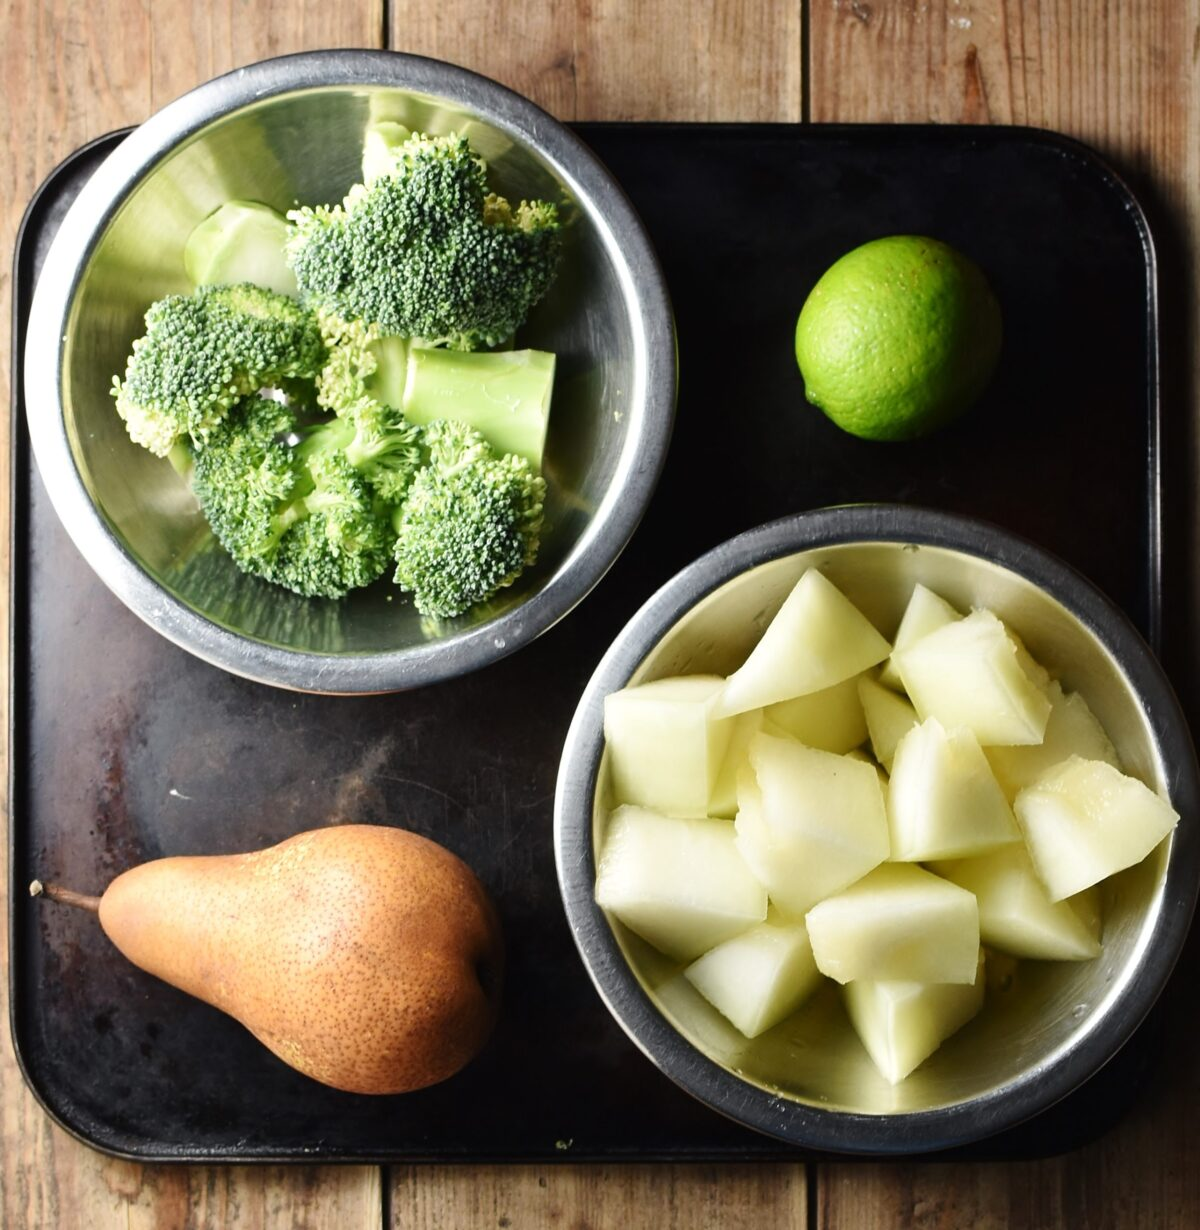 Chopped melon and broccoli in separate metal bowls, pear and lime on top of black tray.